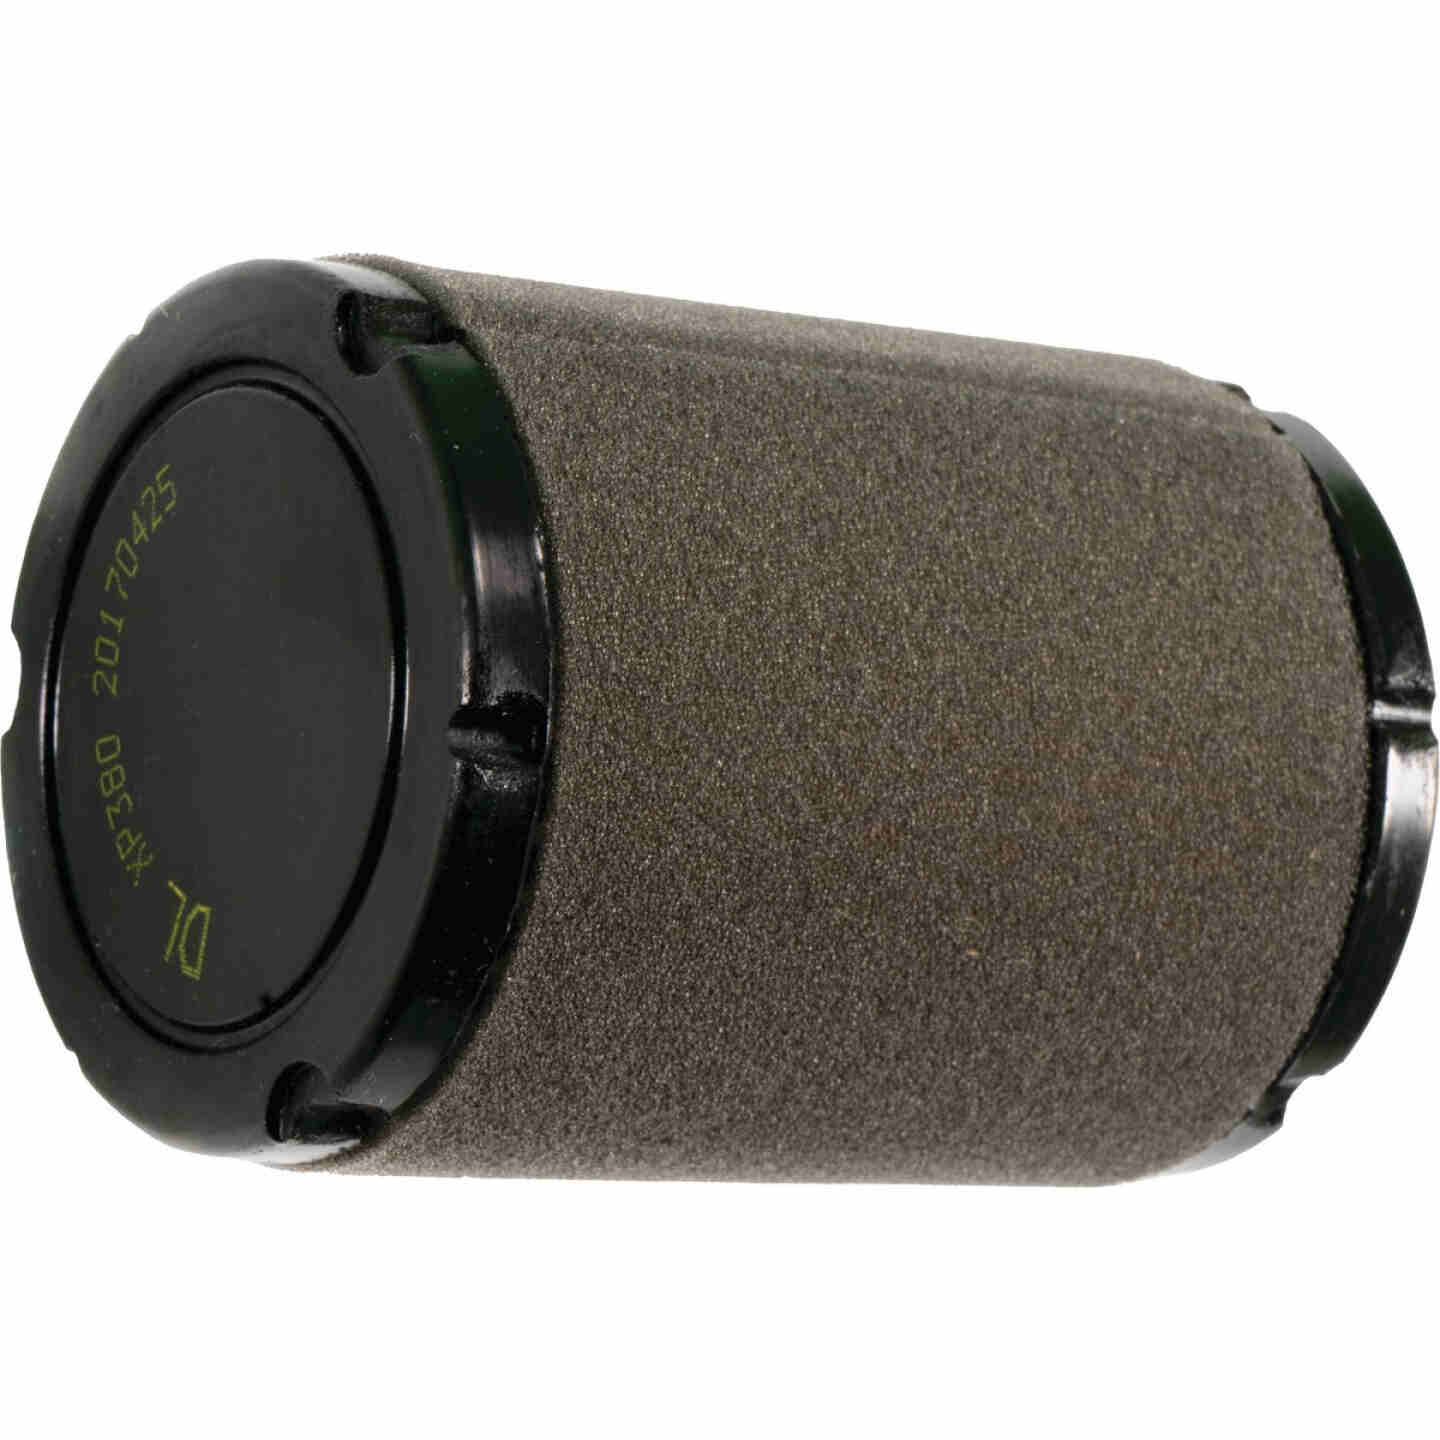 MTD Air Filter for Powermore and Troy-Bilt 382cc and 439cc Premium OHV Engines Image 1